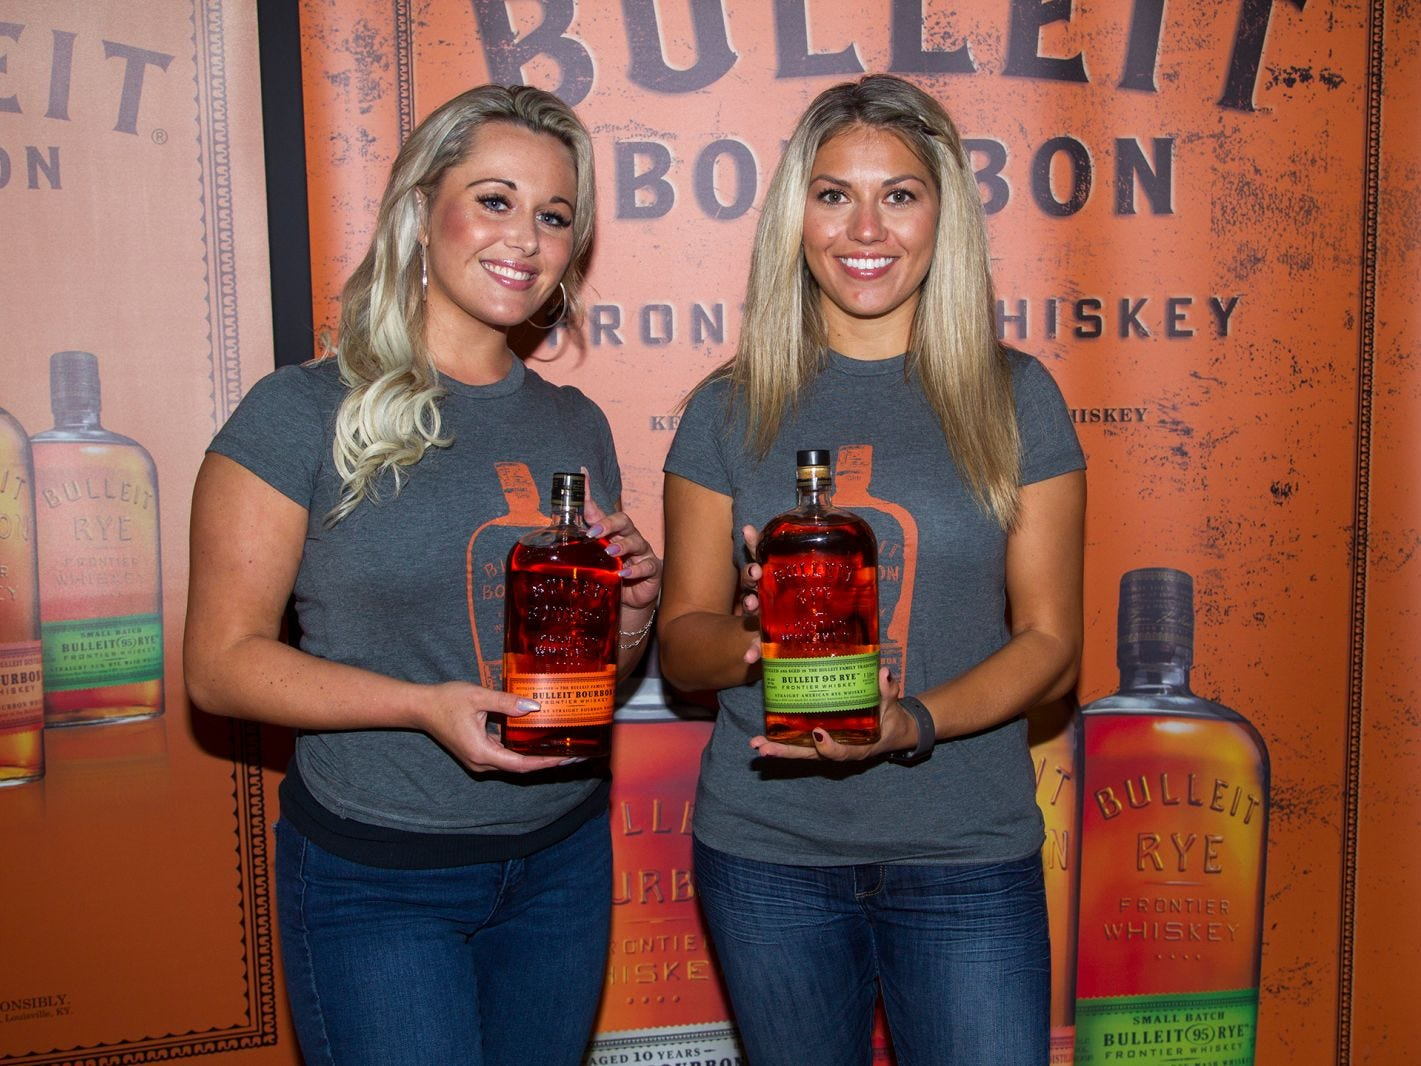 Heather, Jaimie. Jersey City Craft Distillery Fest at the Harborside Atrium featured more than 100 styles of spirits. Guests had the chance to taste craft-distilled spirits from moonshine, rum, cognac, whiskey, vodka, gin, tequila and more. 09/08/2018